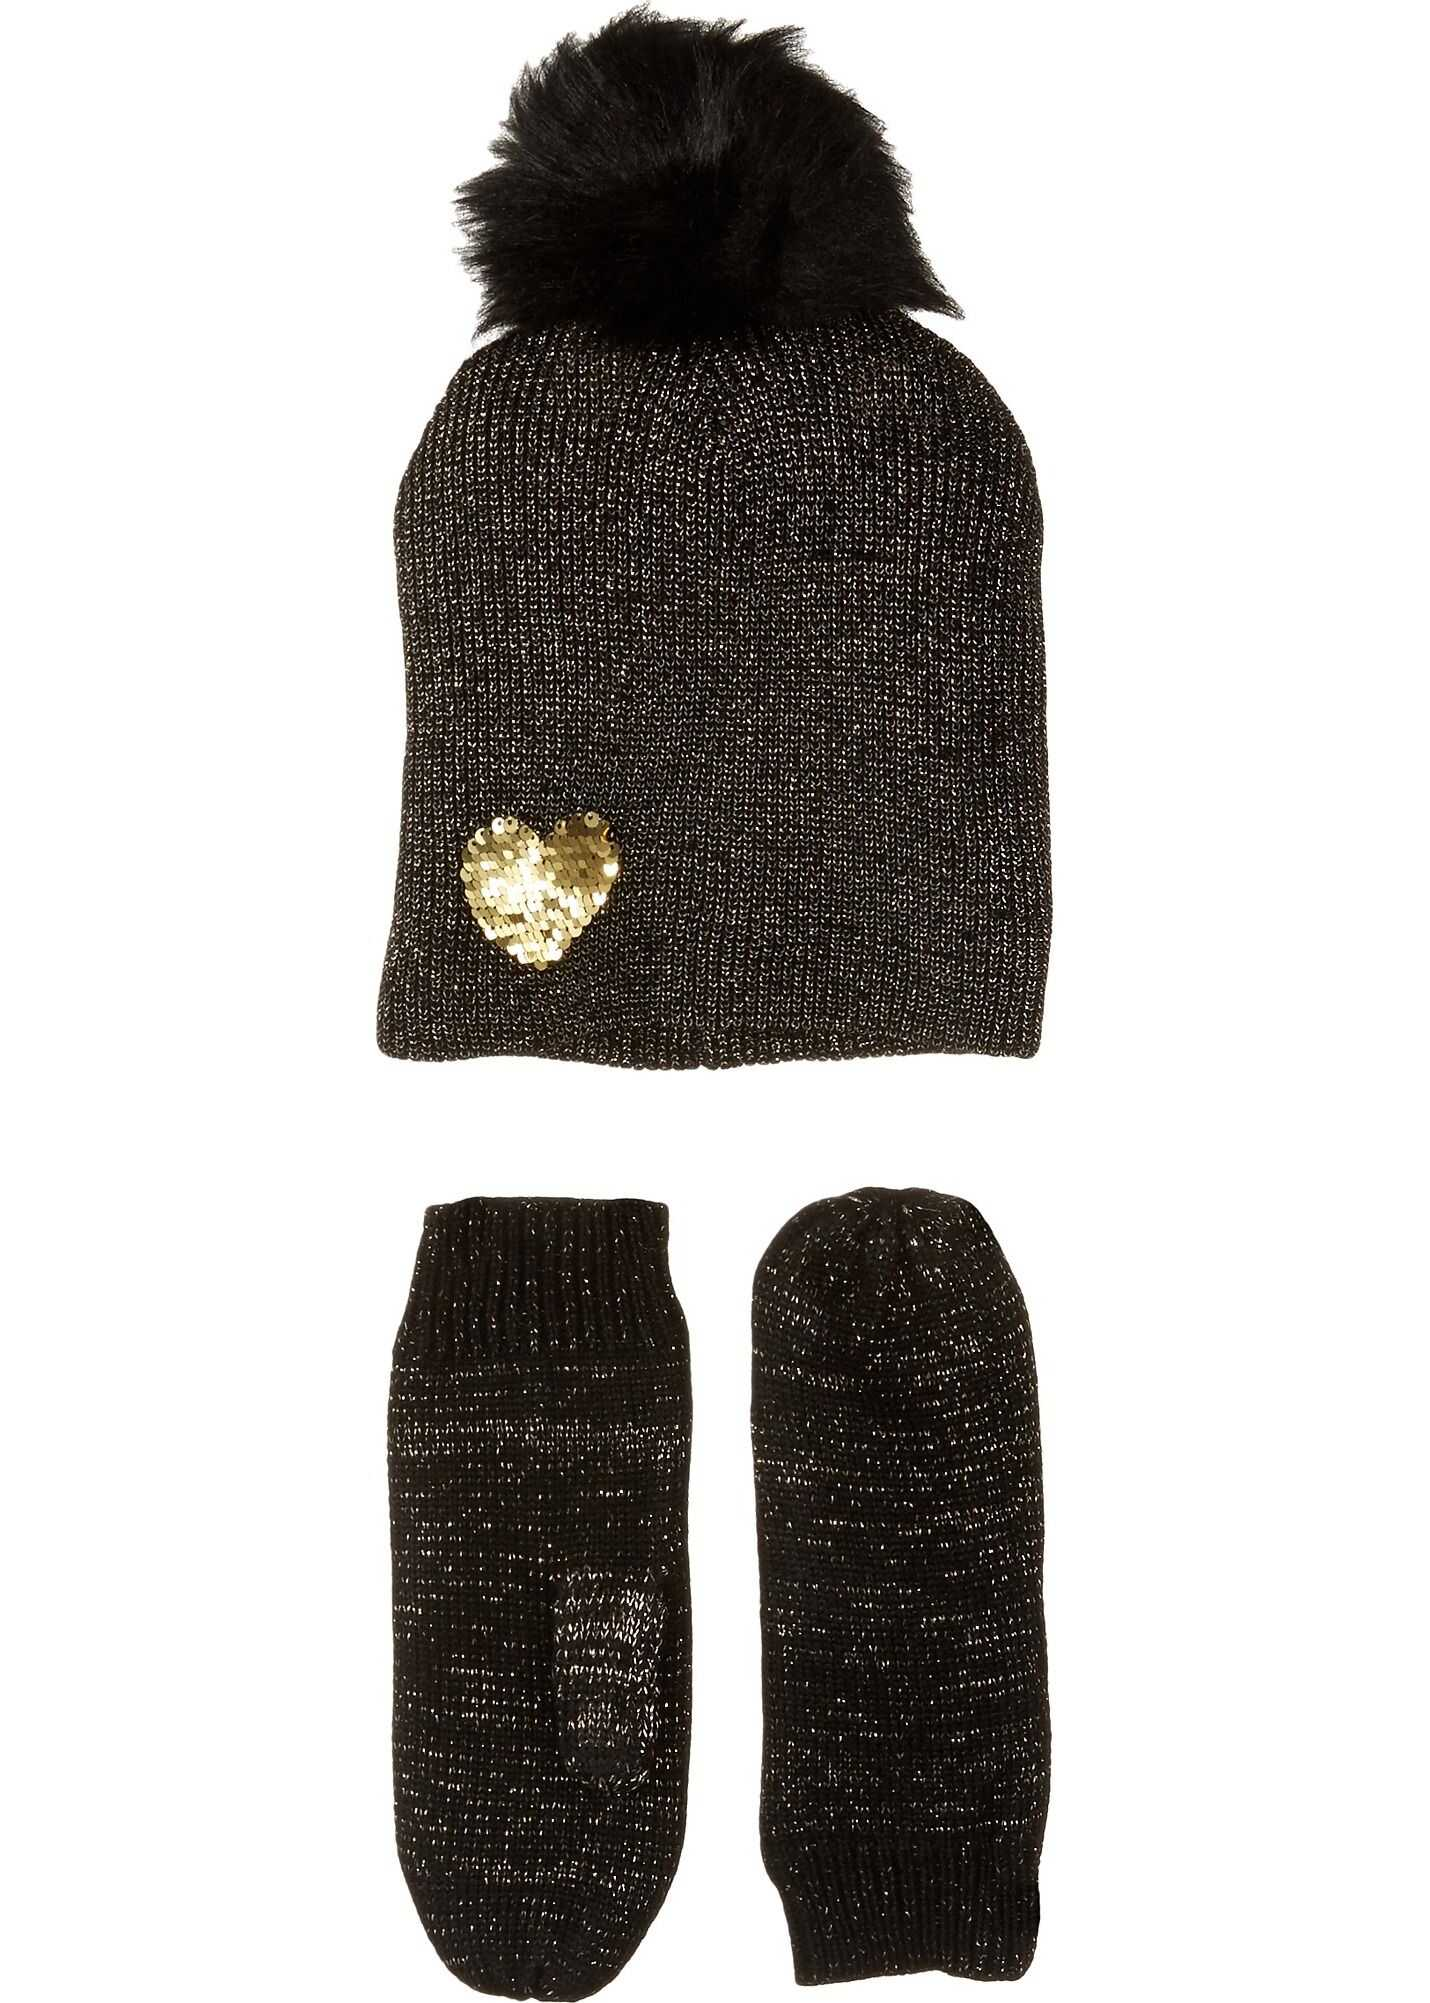 Betsey Johnson Heart to Heart Hat Gloves Two-Piece Set* Black/Gold